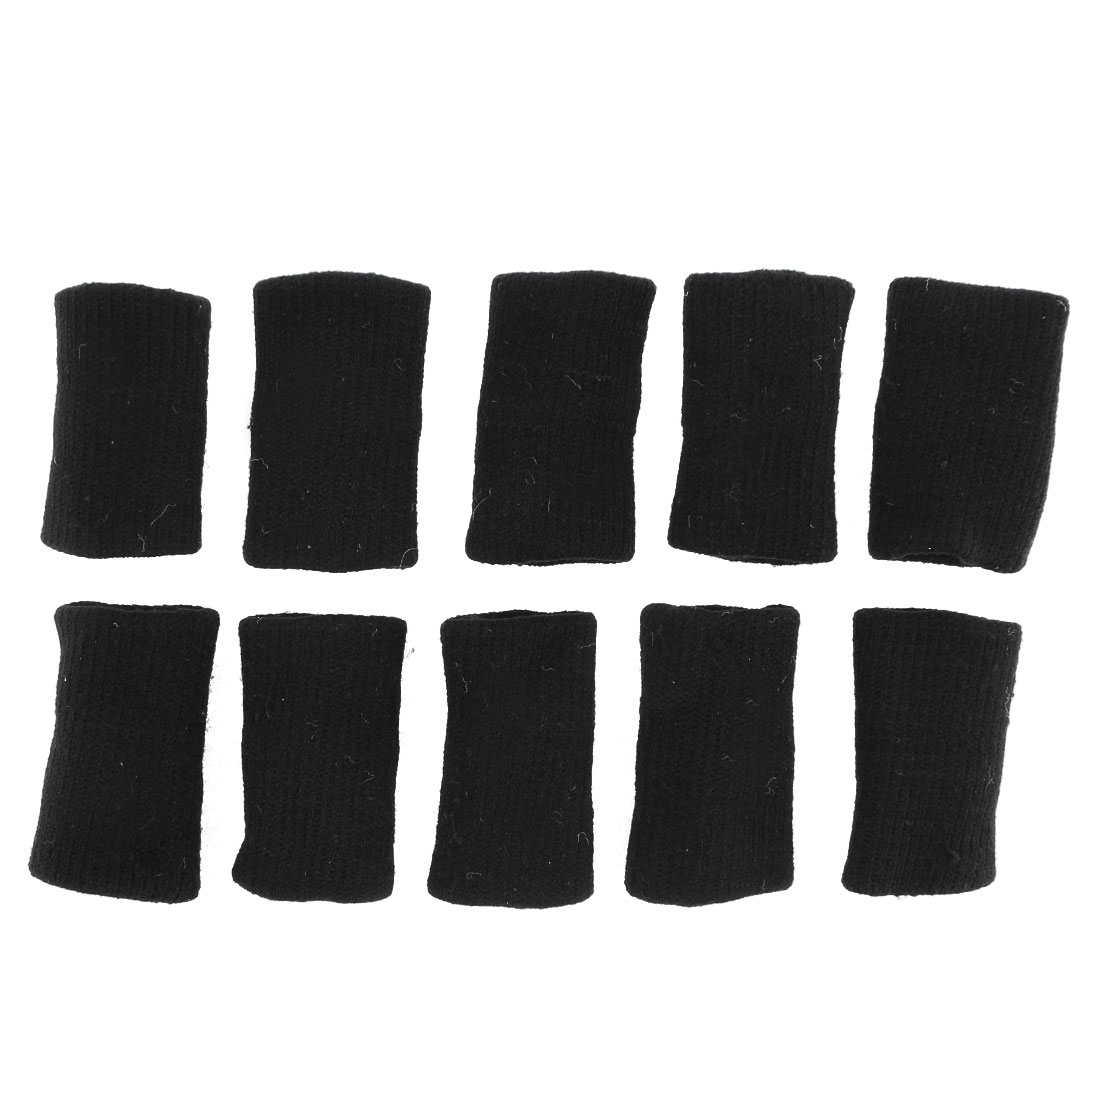 10 Pcs Black Stretchy Finger Protector Sleeve Support Arthritis Sports Aid